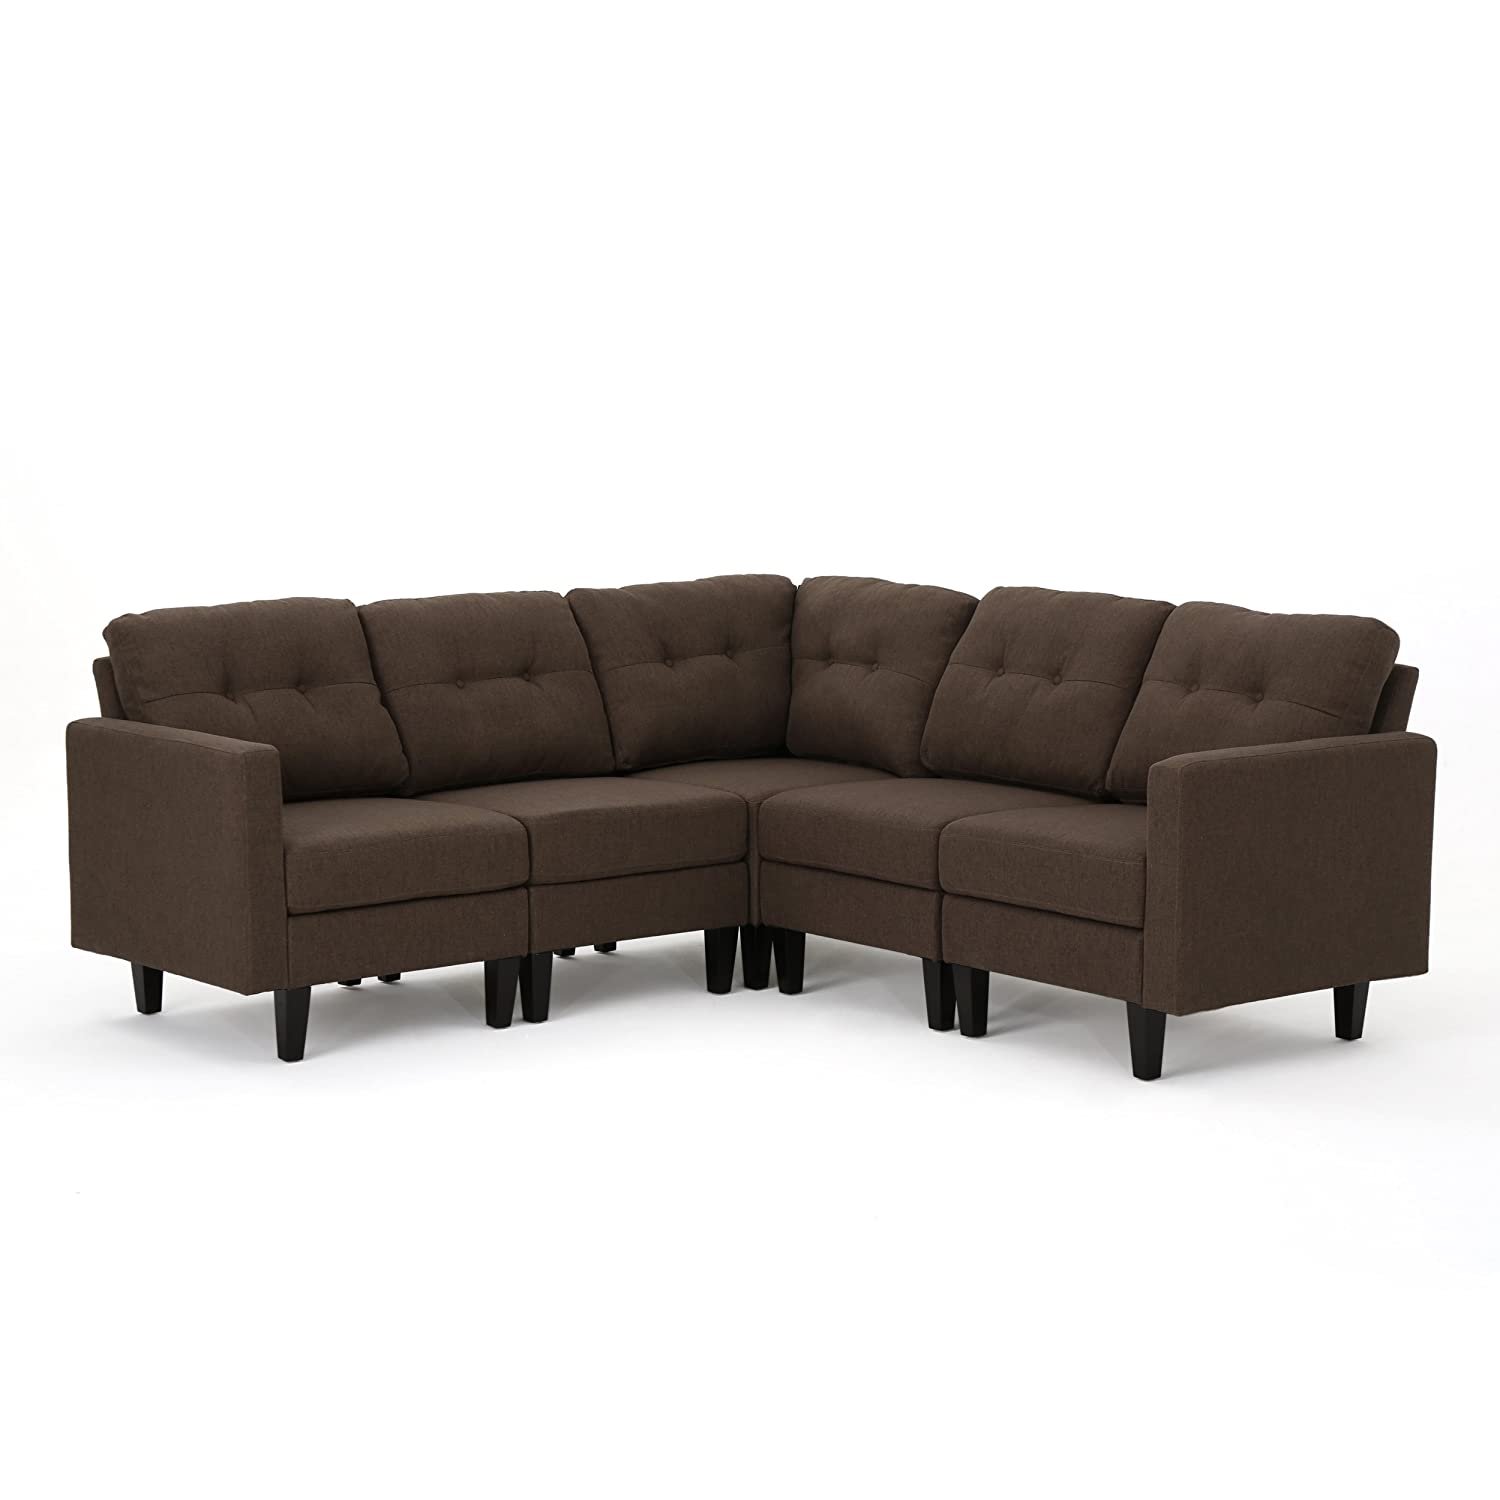 Fine Christopher Knight Home 303602 Emmie Mid Century Modern 5 Piece Dark Brown Fabric Sectional Sofa Pabps2019 Chair Design Images Pabps2019Com